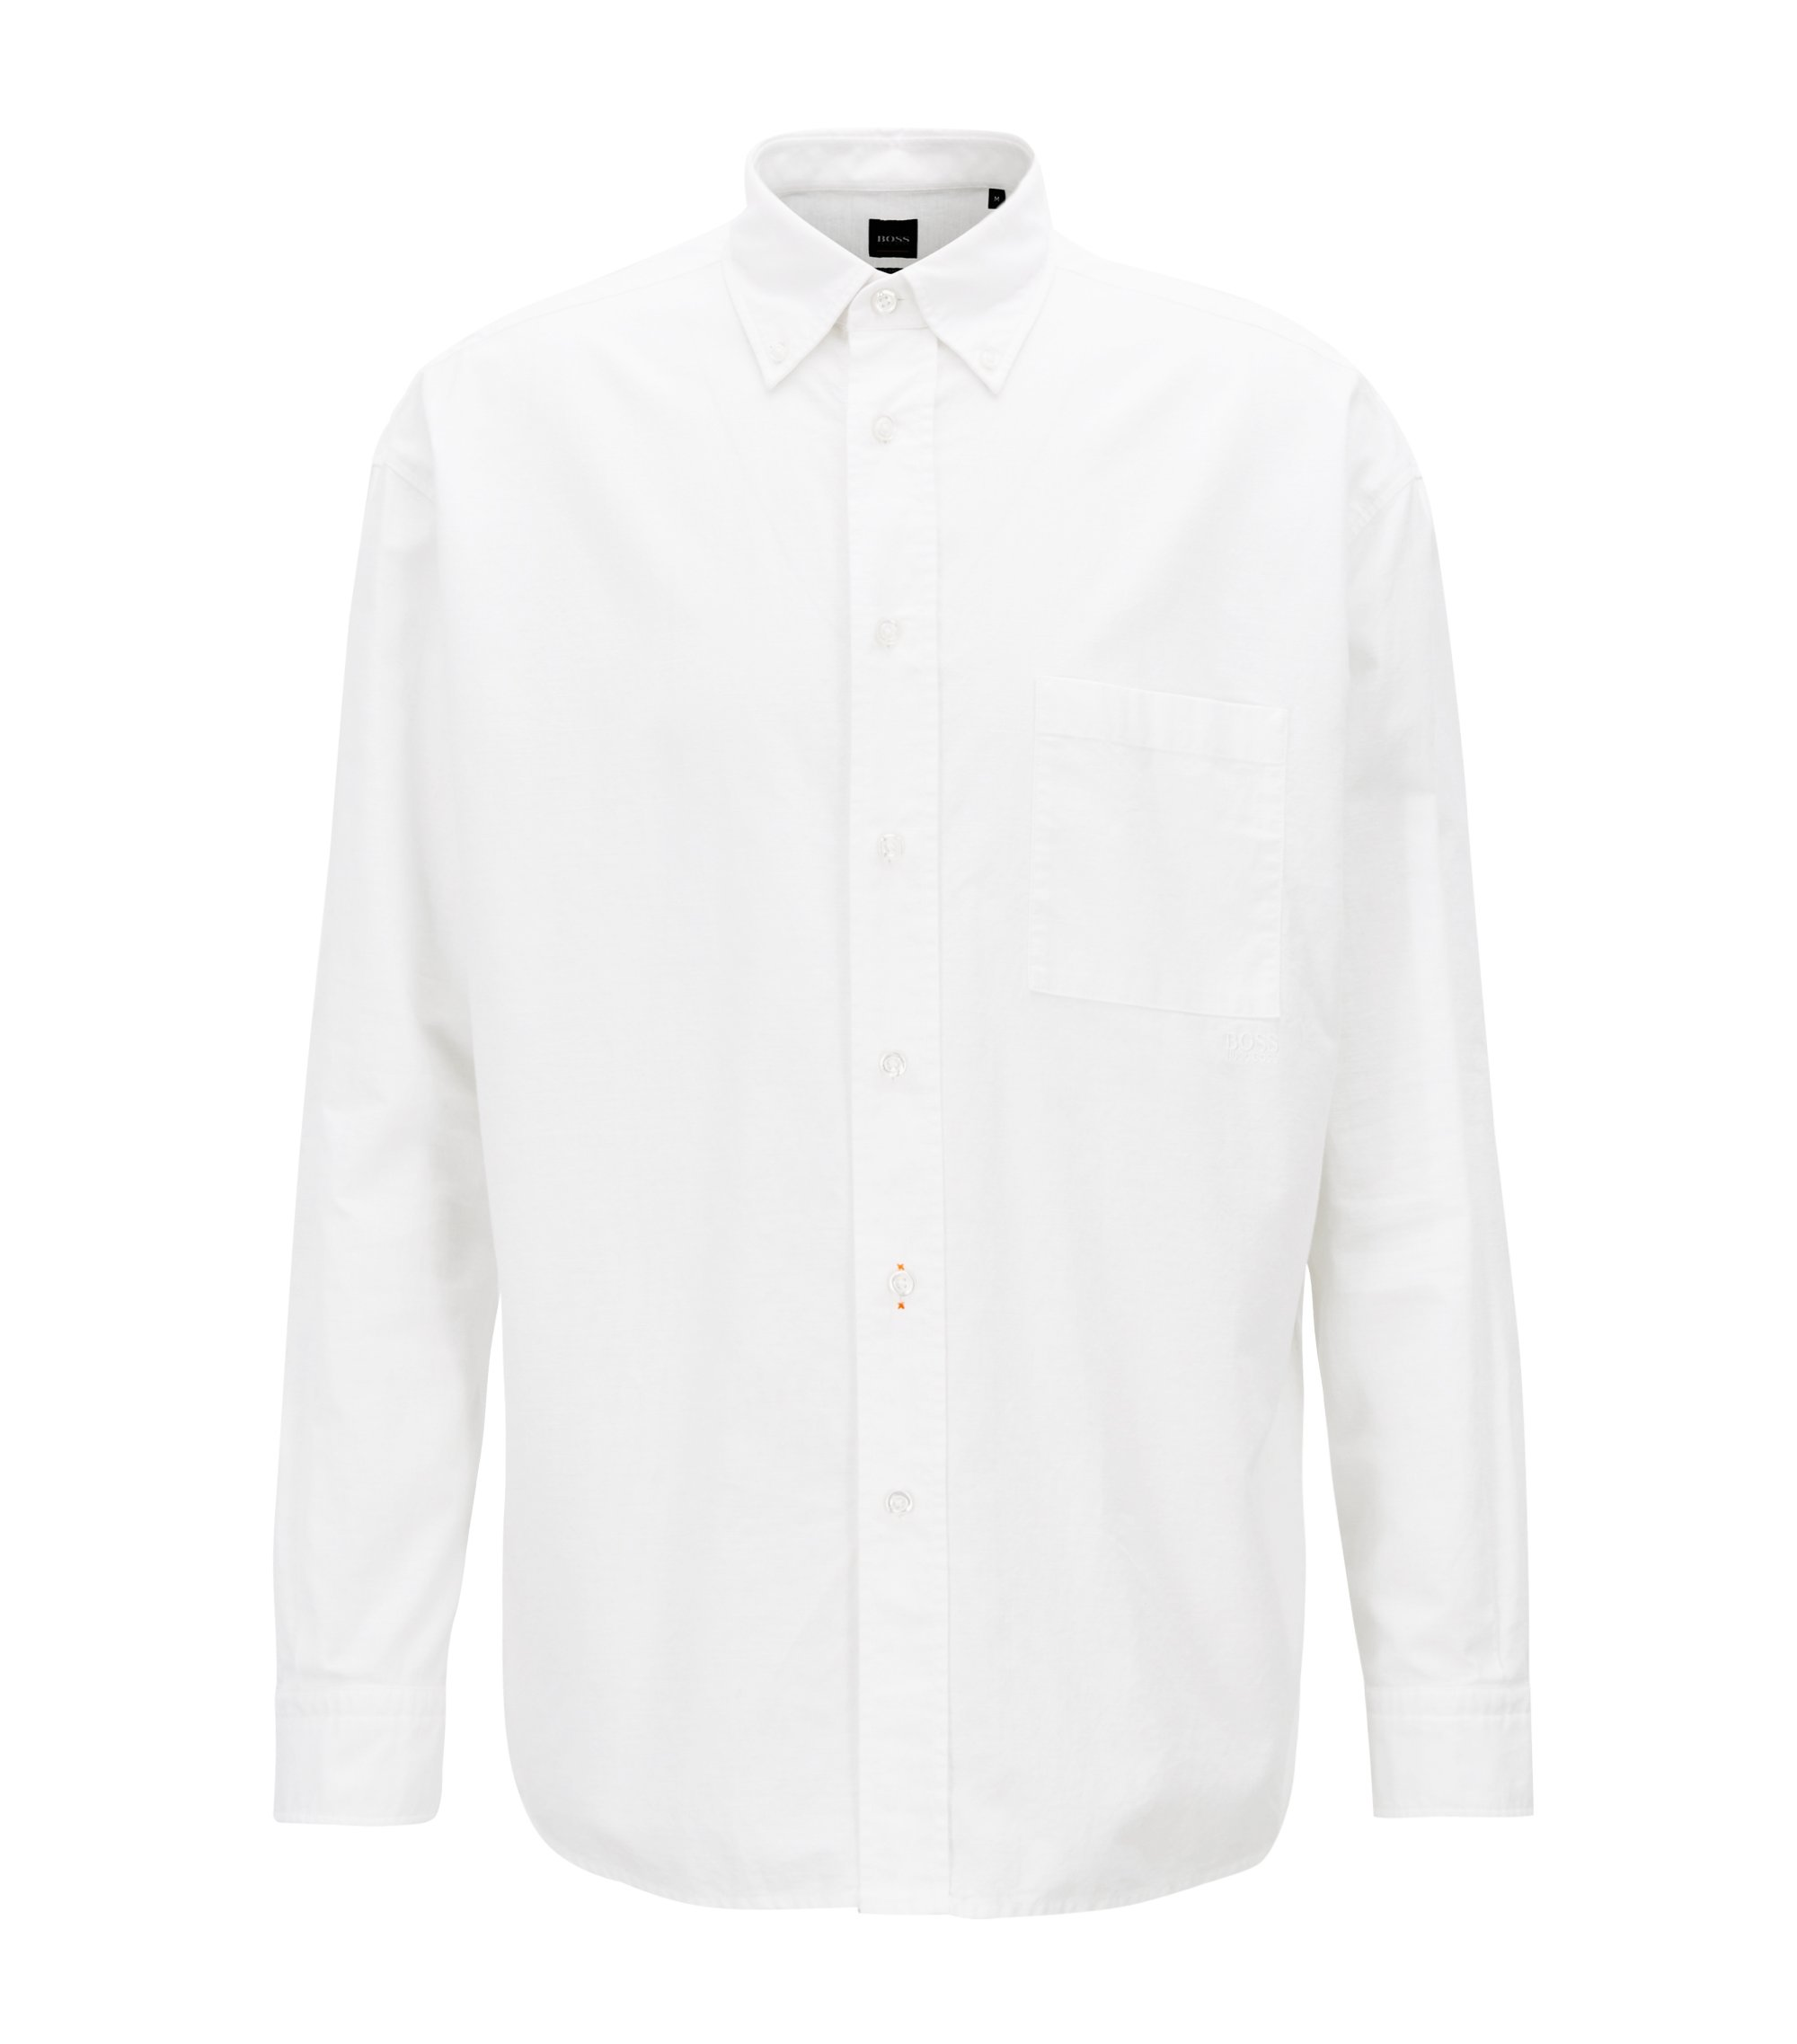 Camicia stile oxford relaxed fit con colletto button-down, Bianco